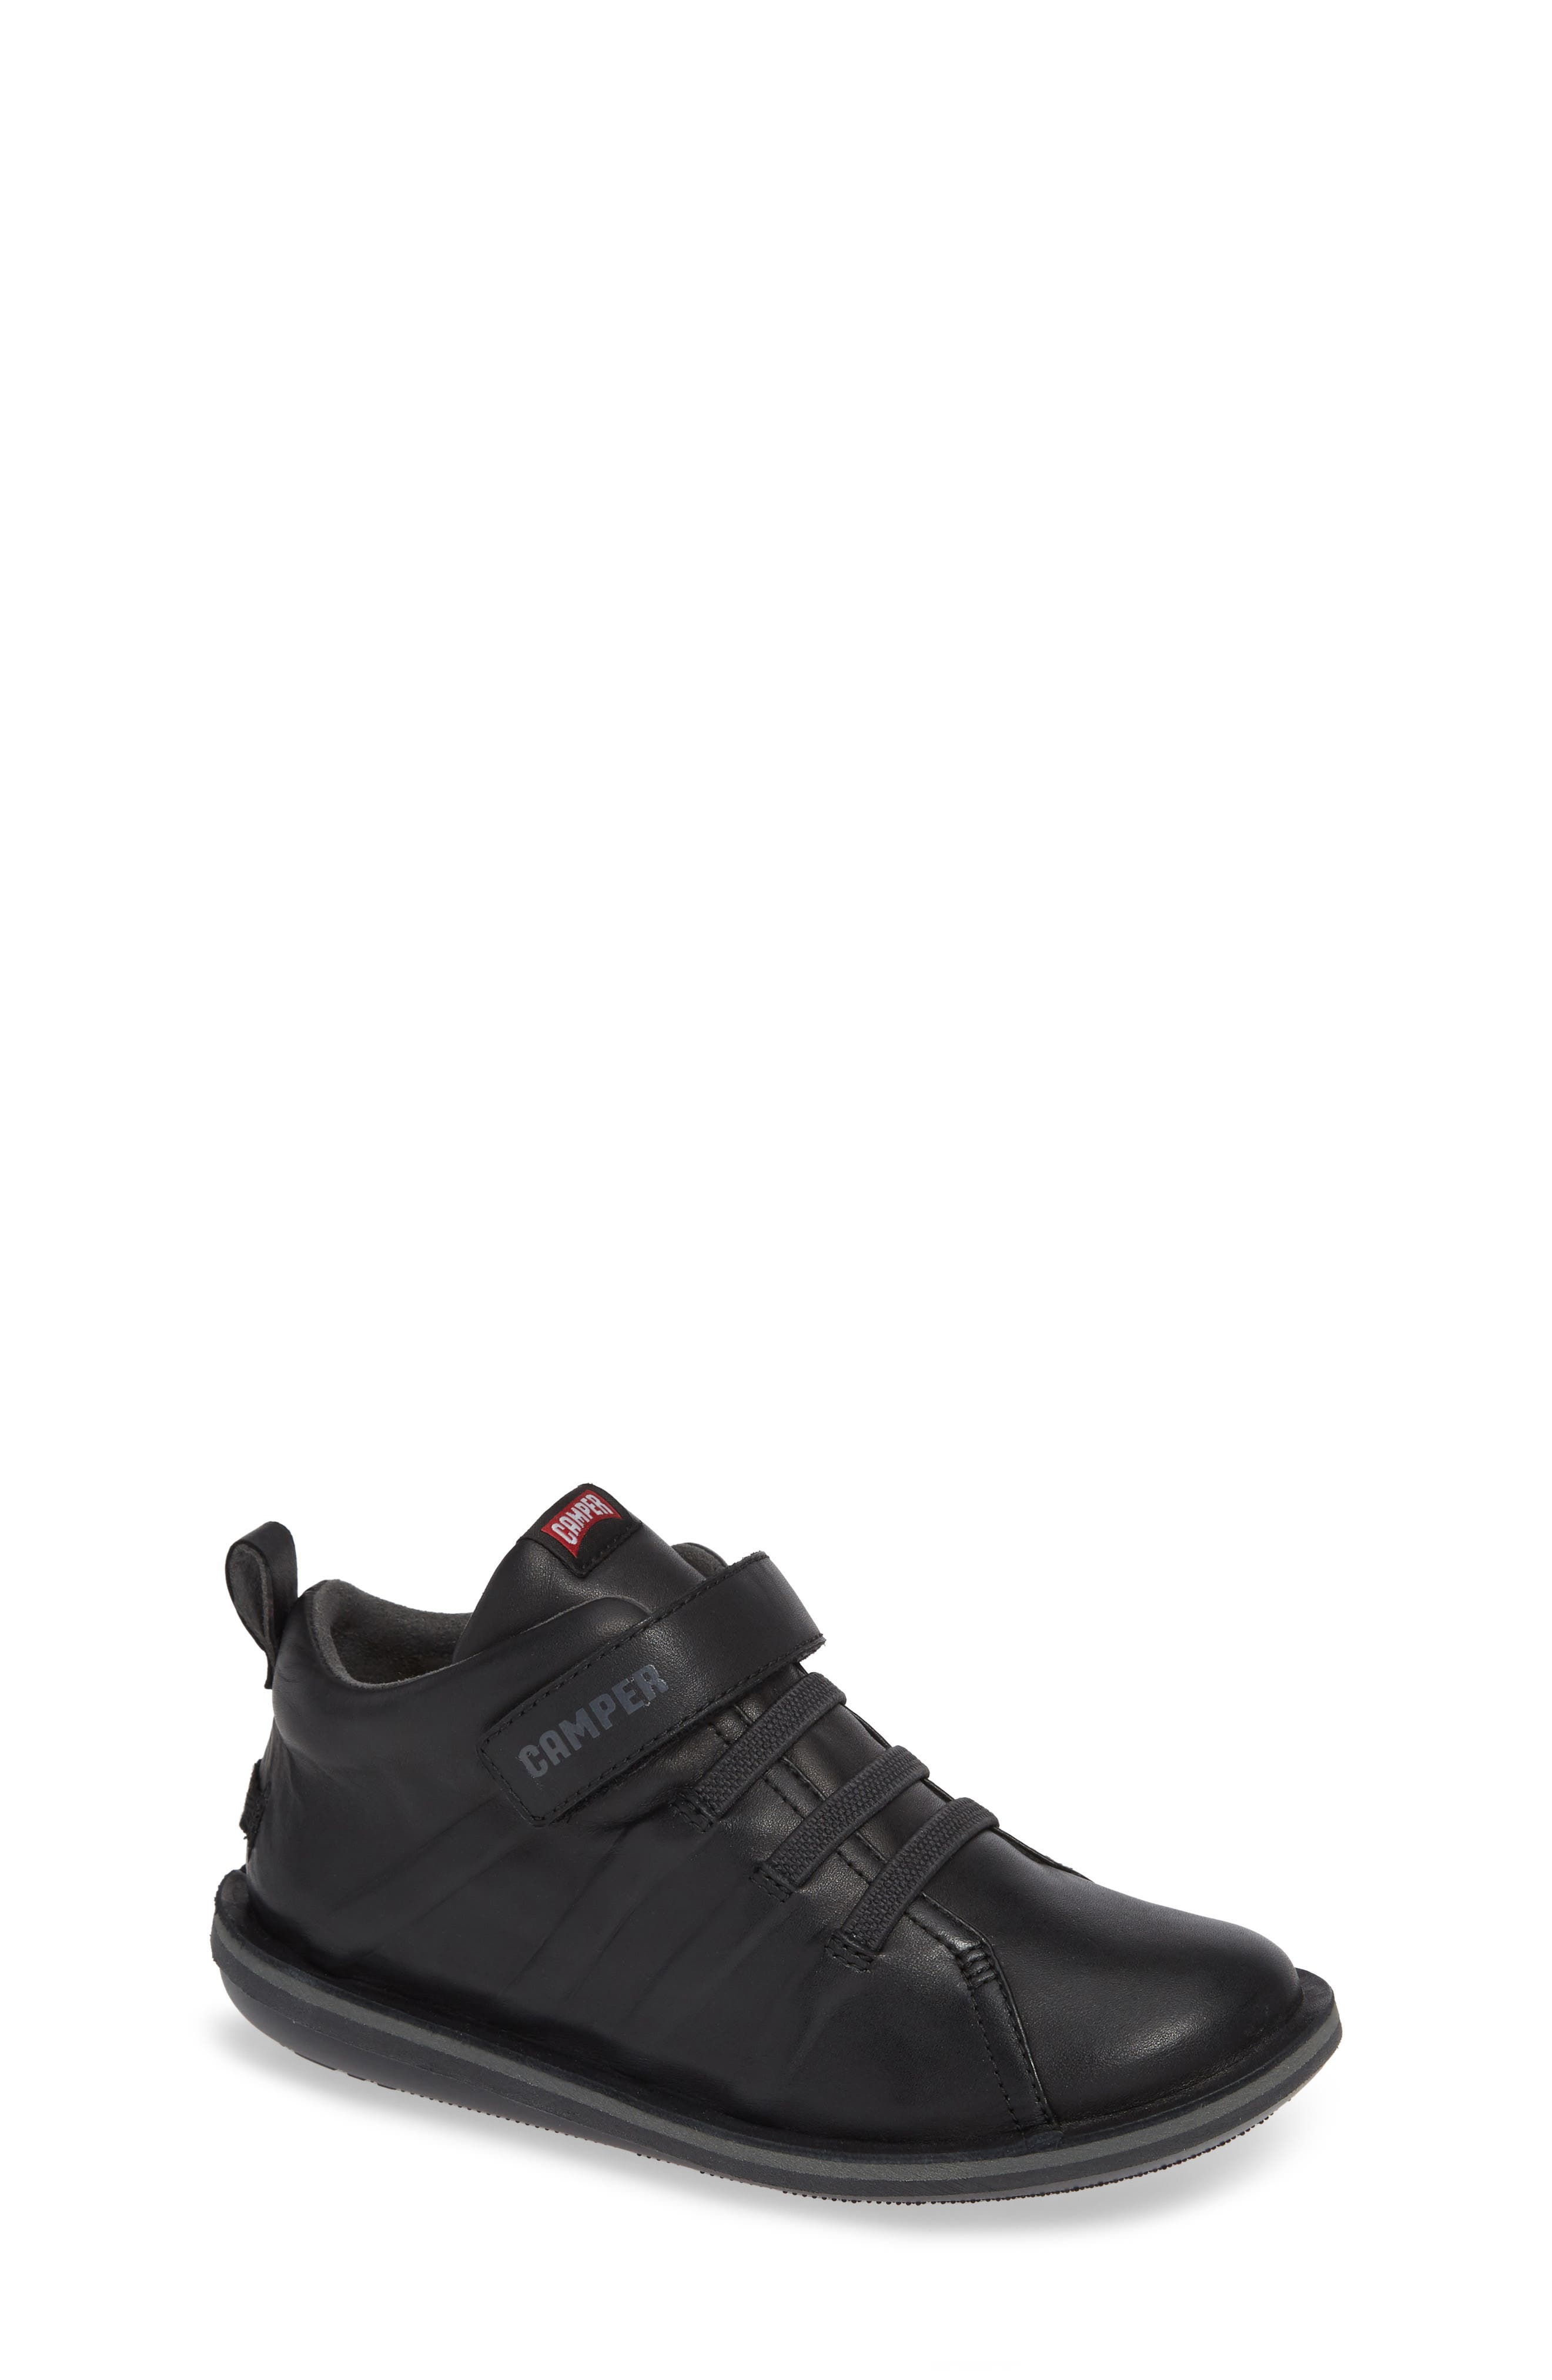 Beetle Water Resistant Sneaker,                             Main thumbnail 1, color,                             BLACK